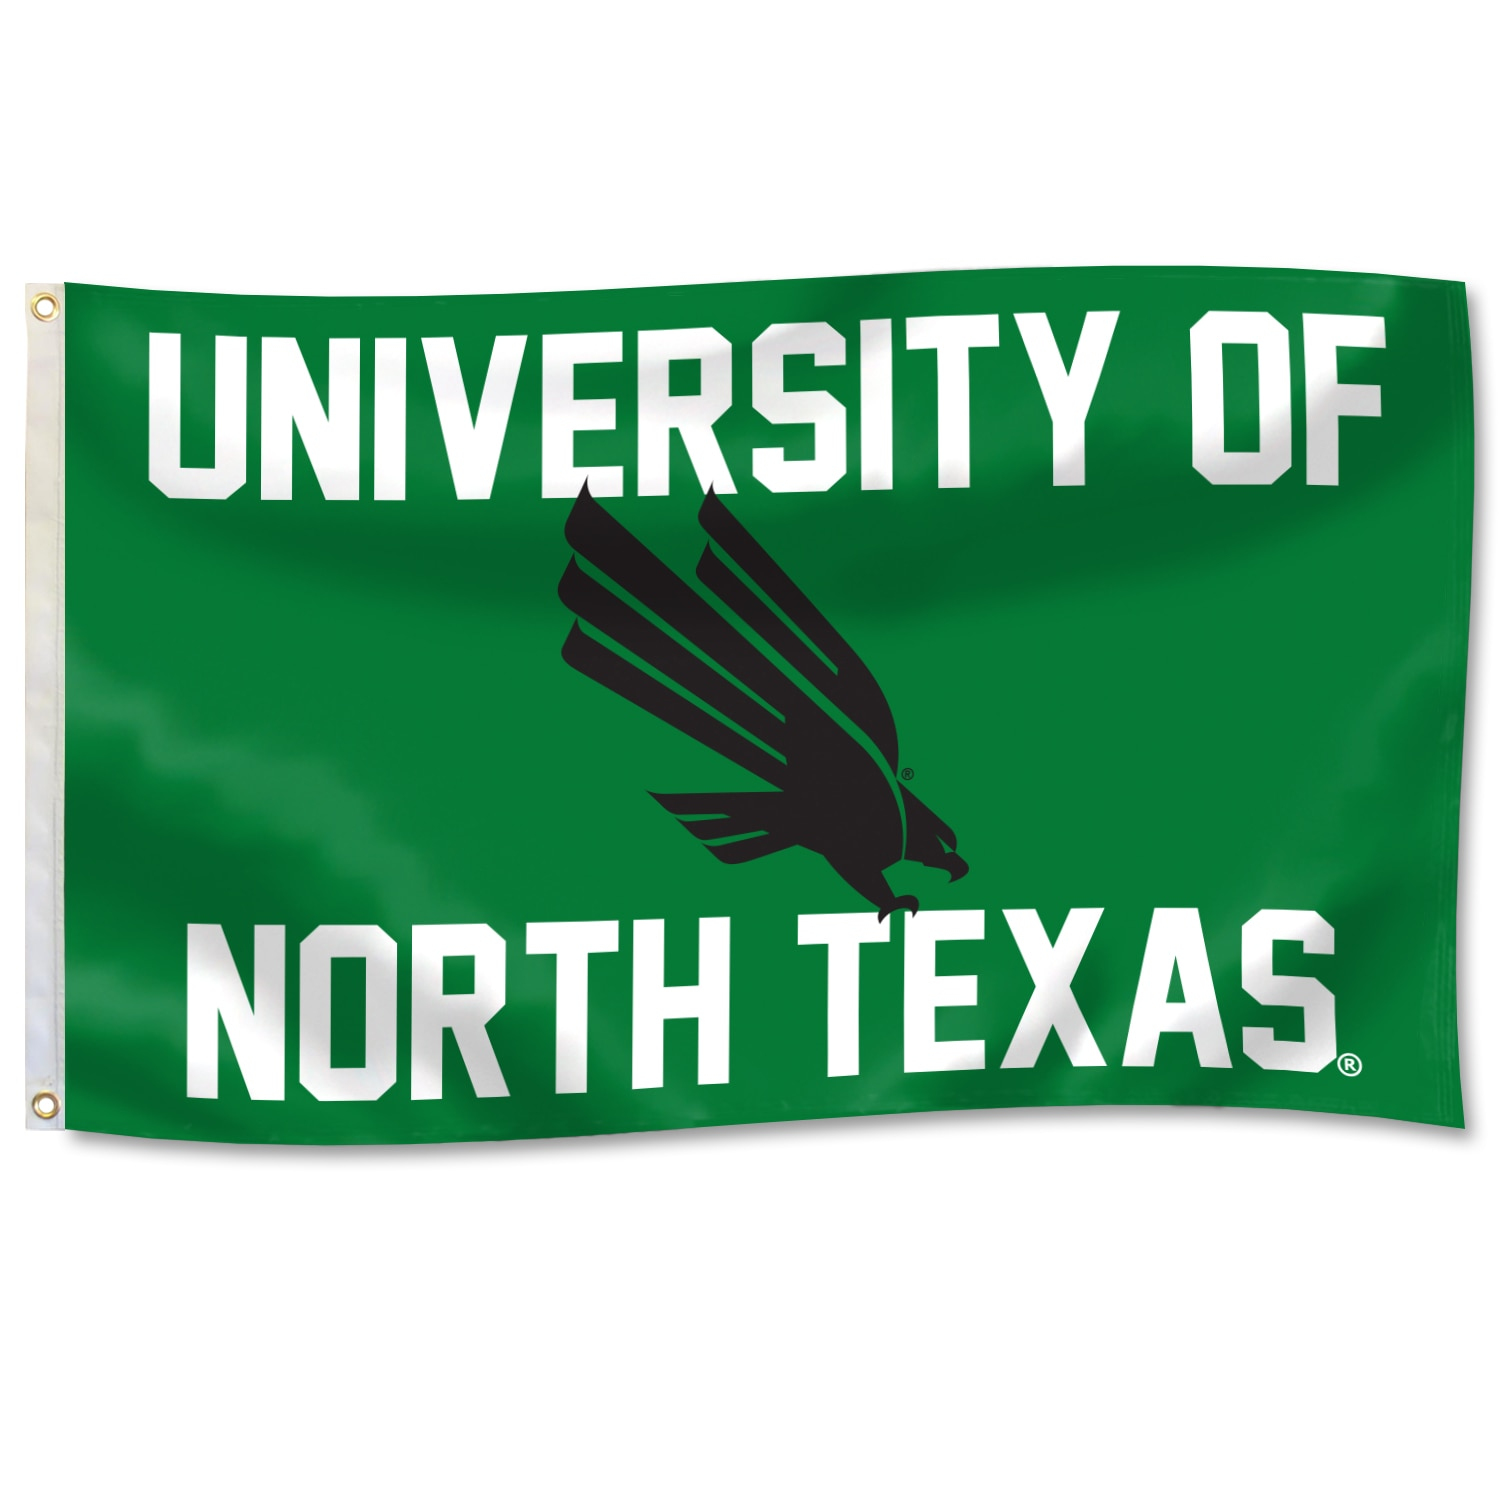 University of North Texas 3'x5' Durawave Flag